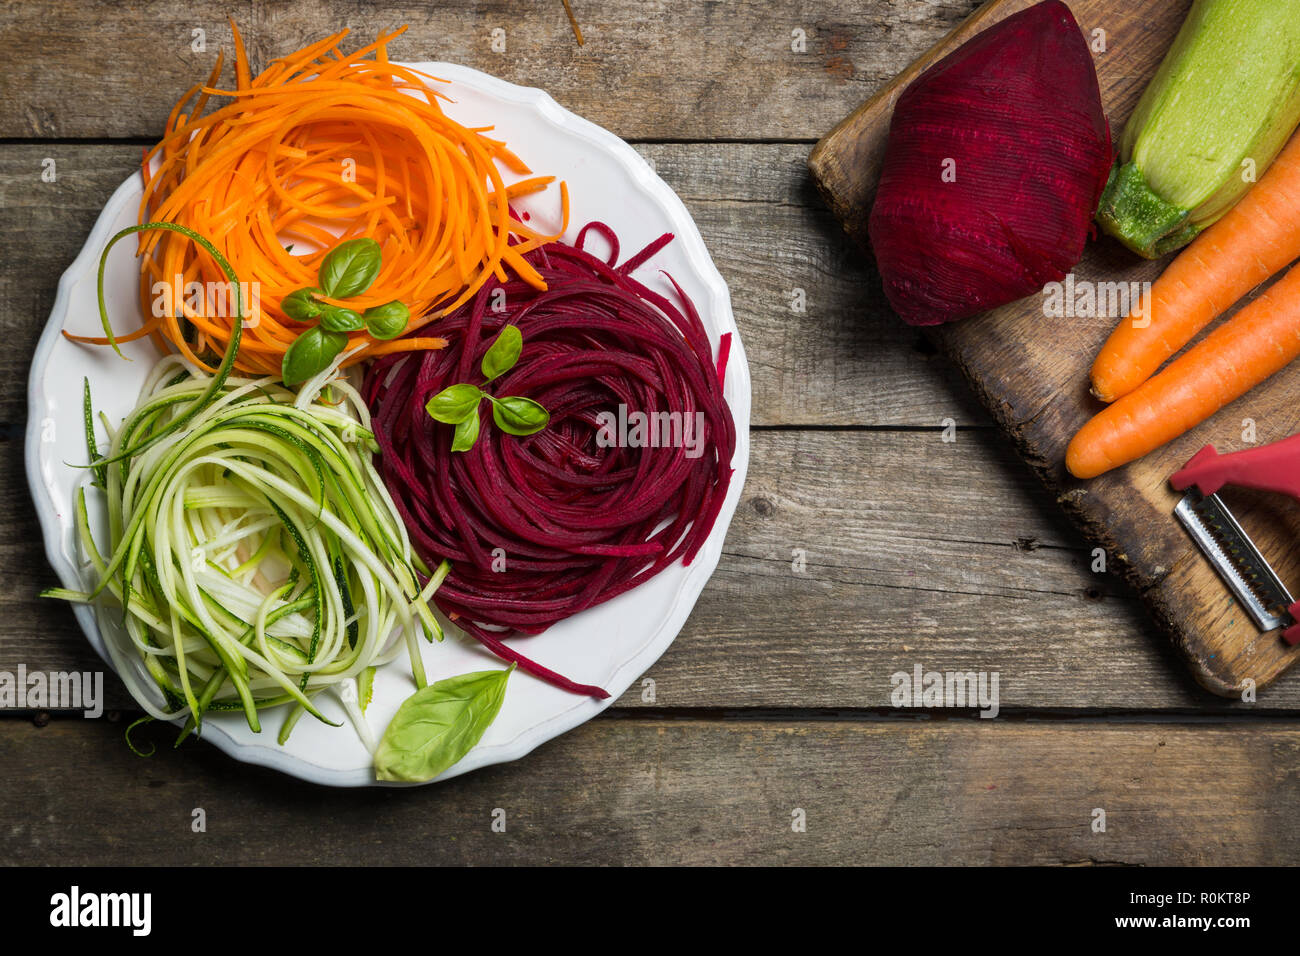 Vegetable noodles - zucchini, carrot and beetroot Stock Photo